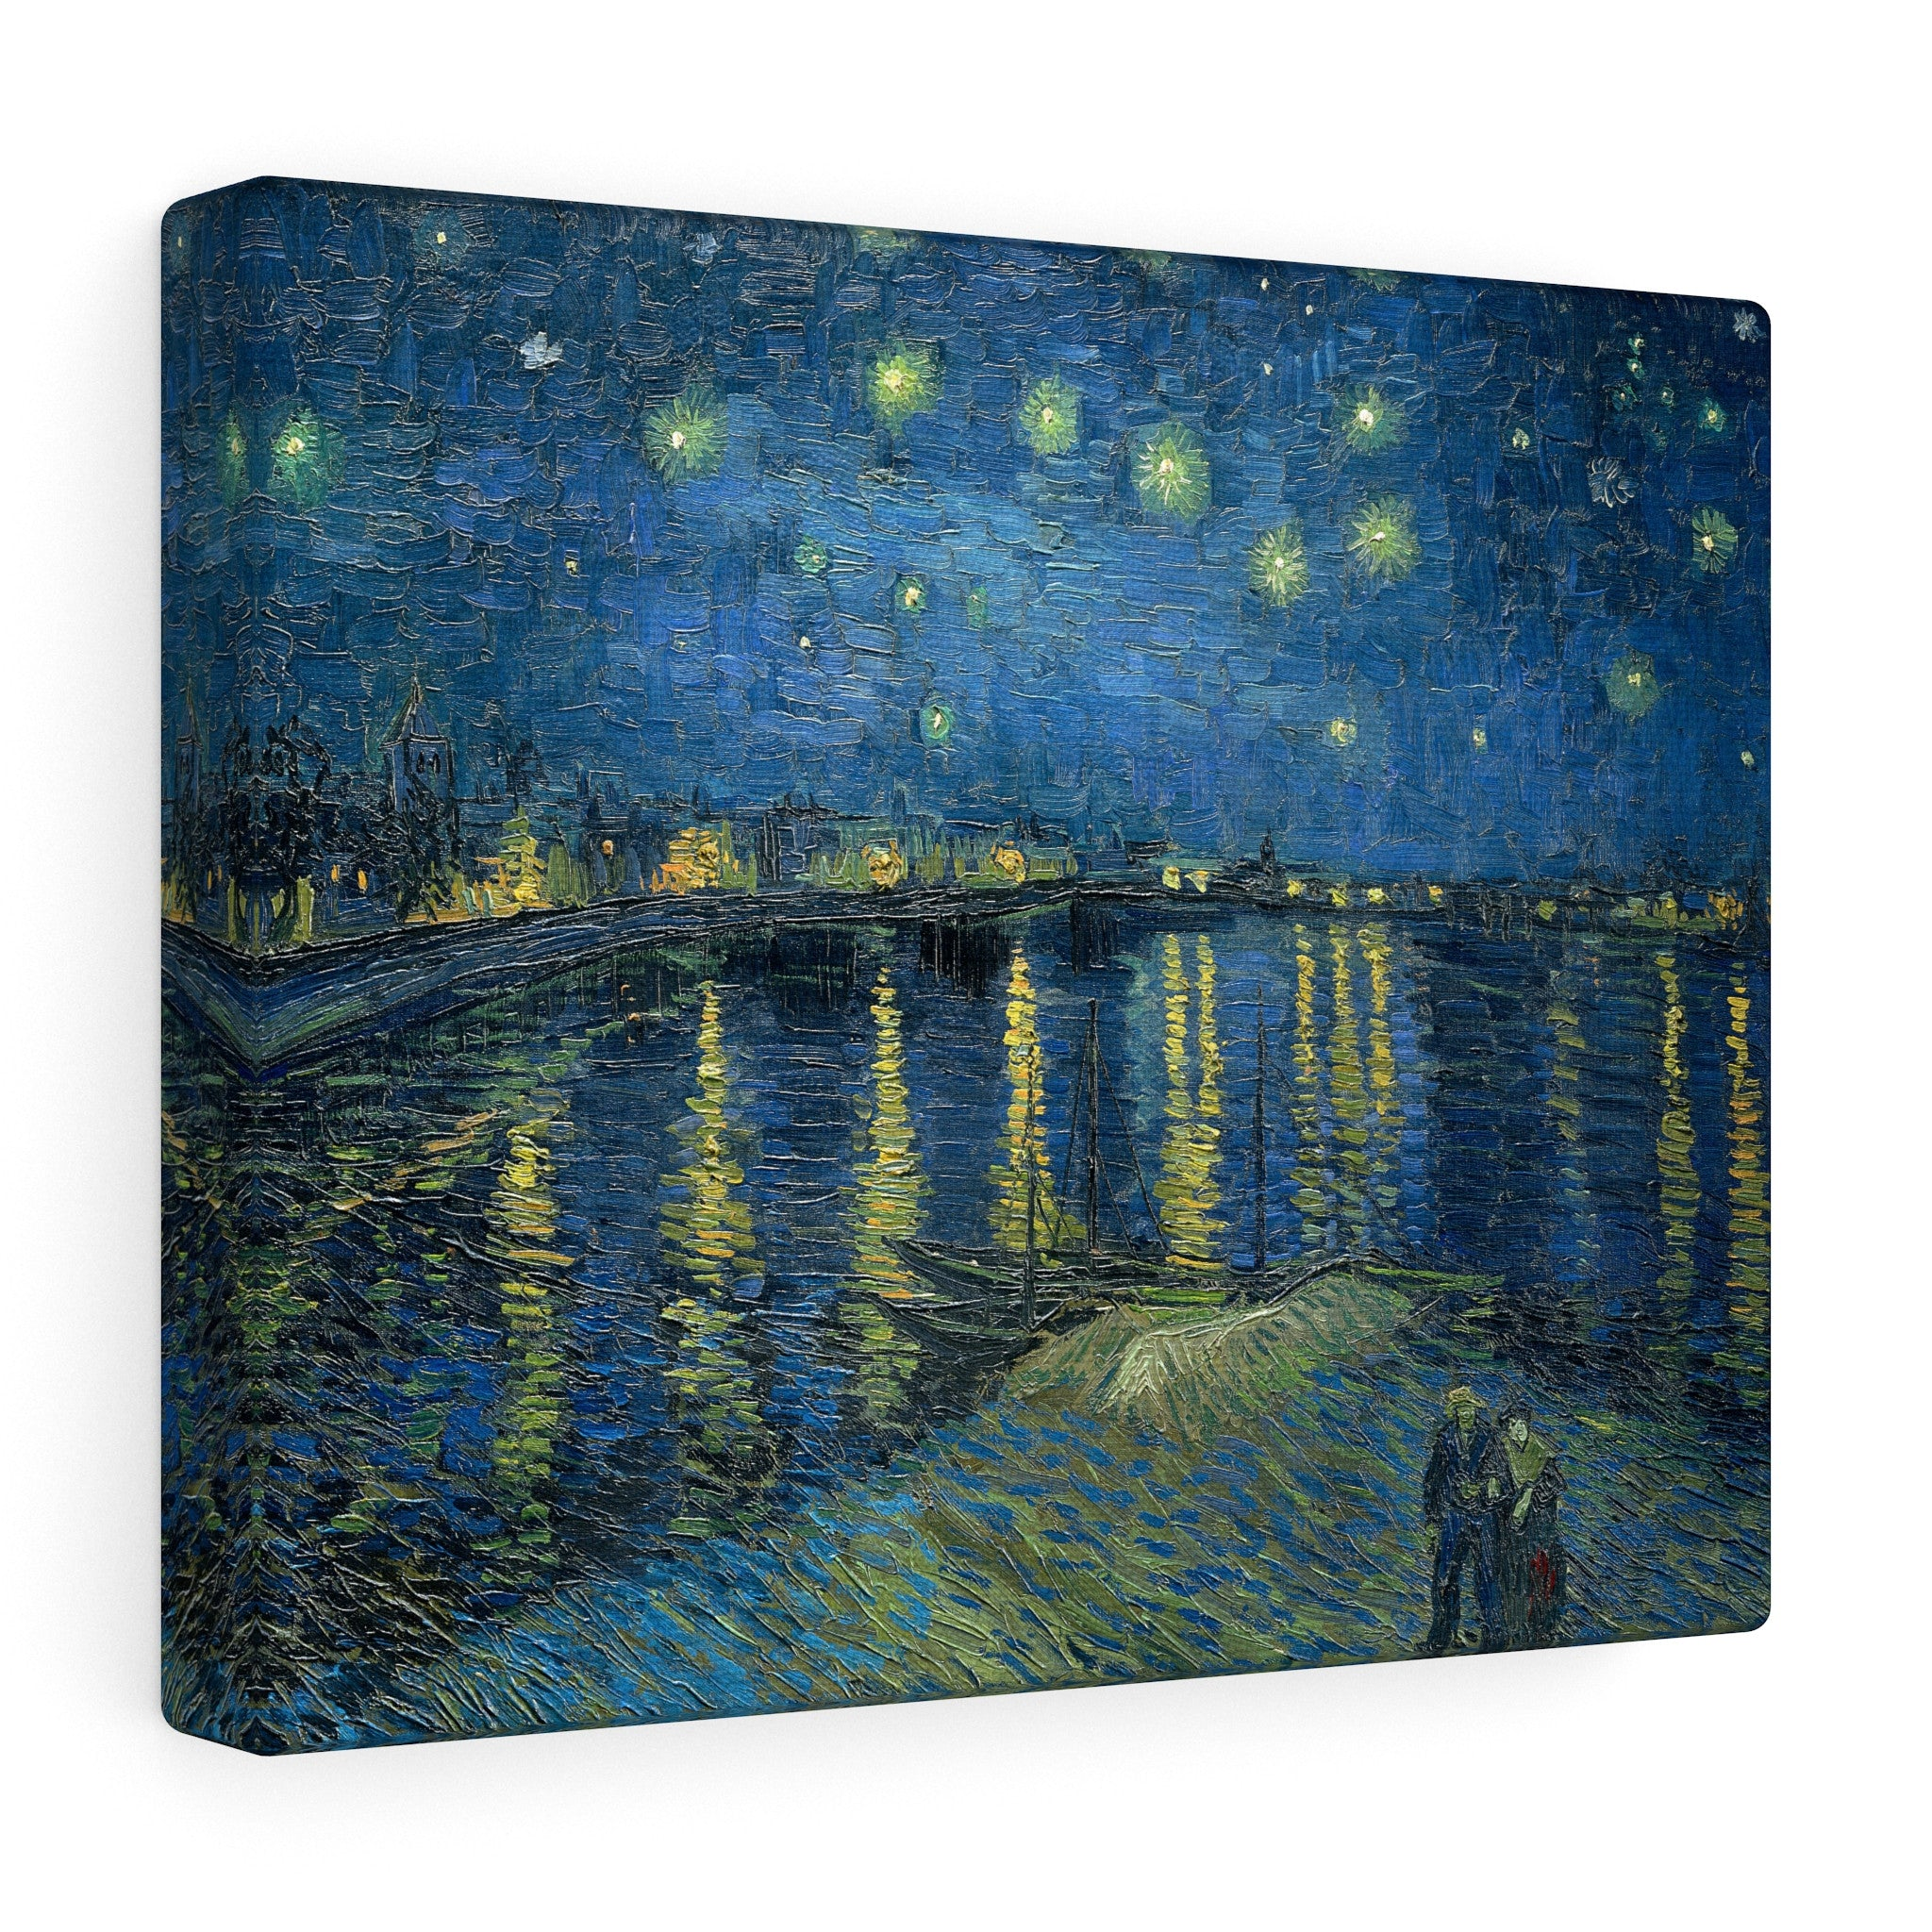 Starry Night Over the Rhone, 1888 by Vincent van Gogh Canvas